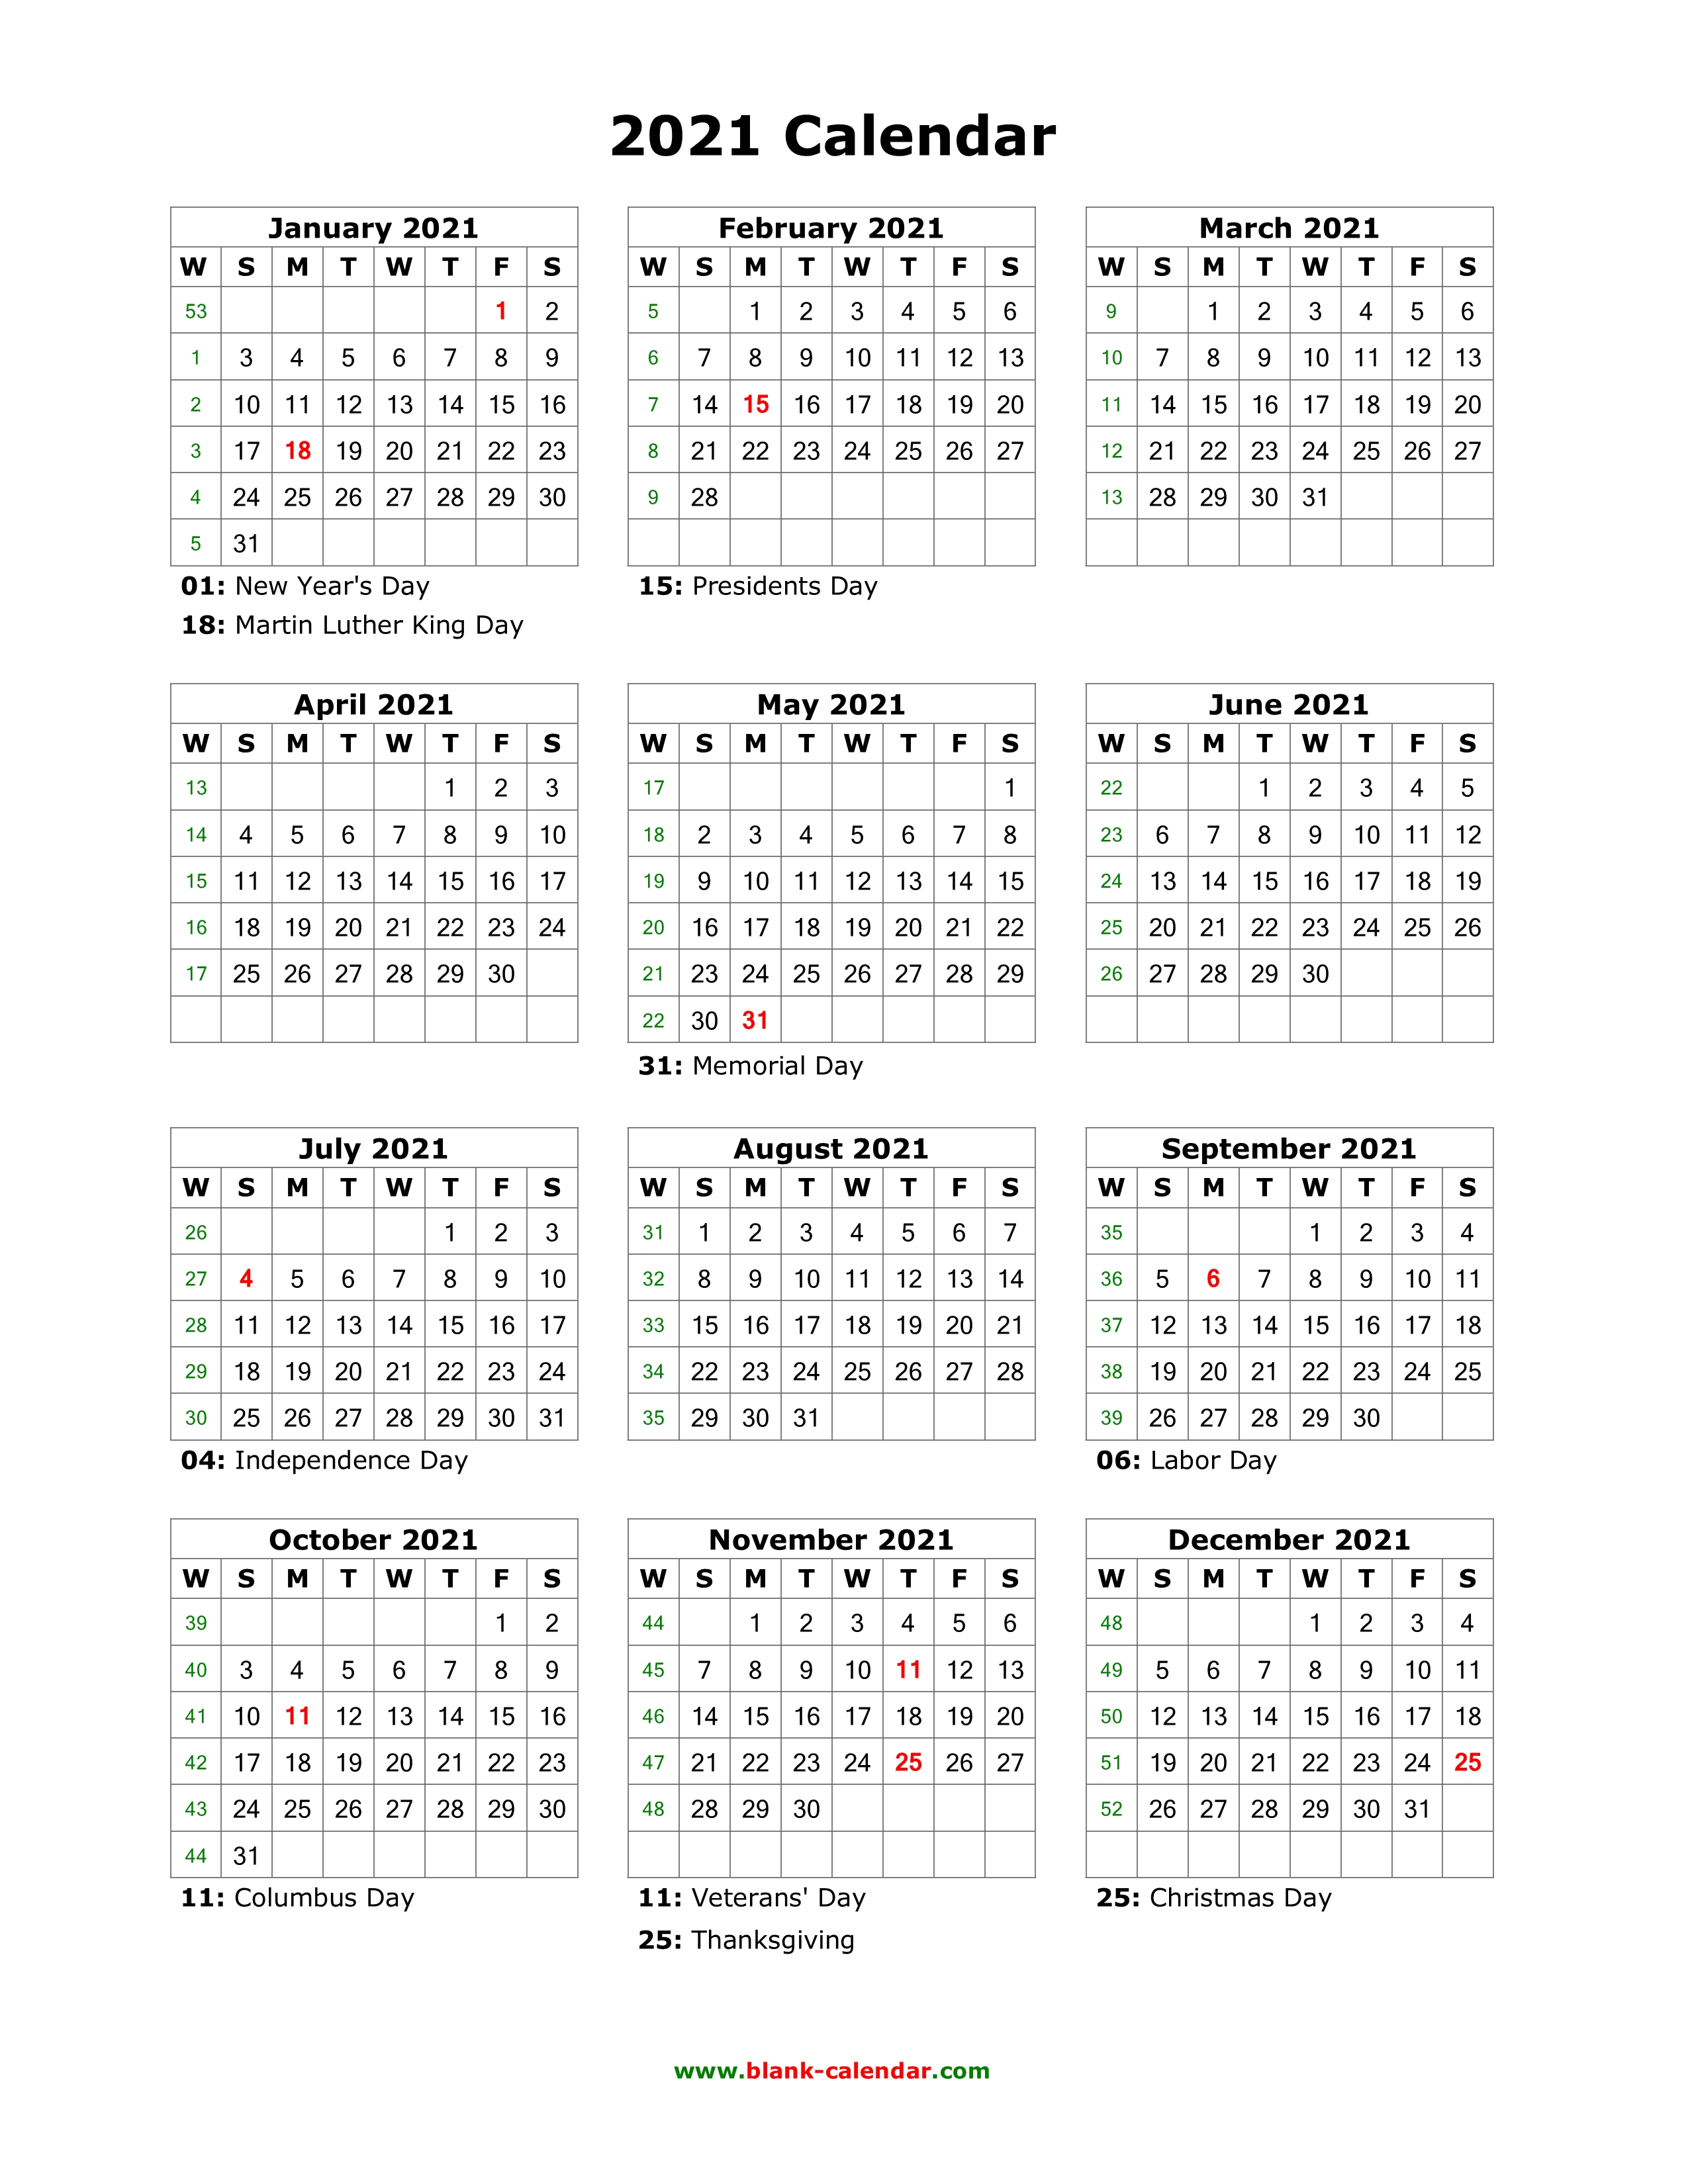 Download Blank Calendar 2021 with US Holidays (12 months on one